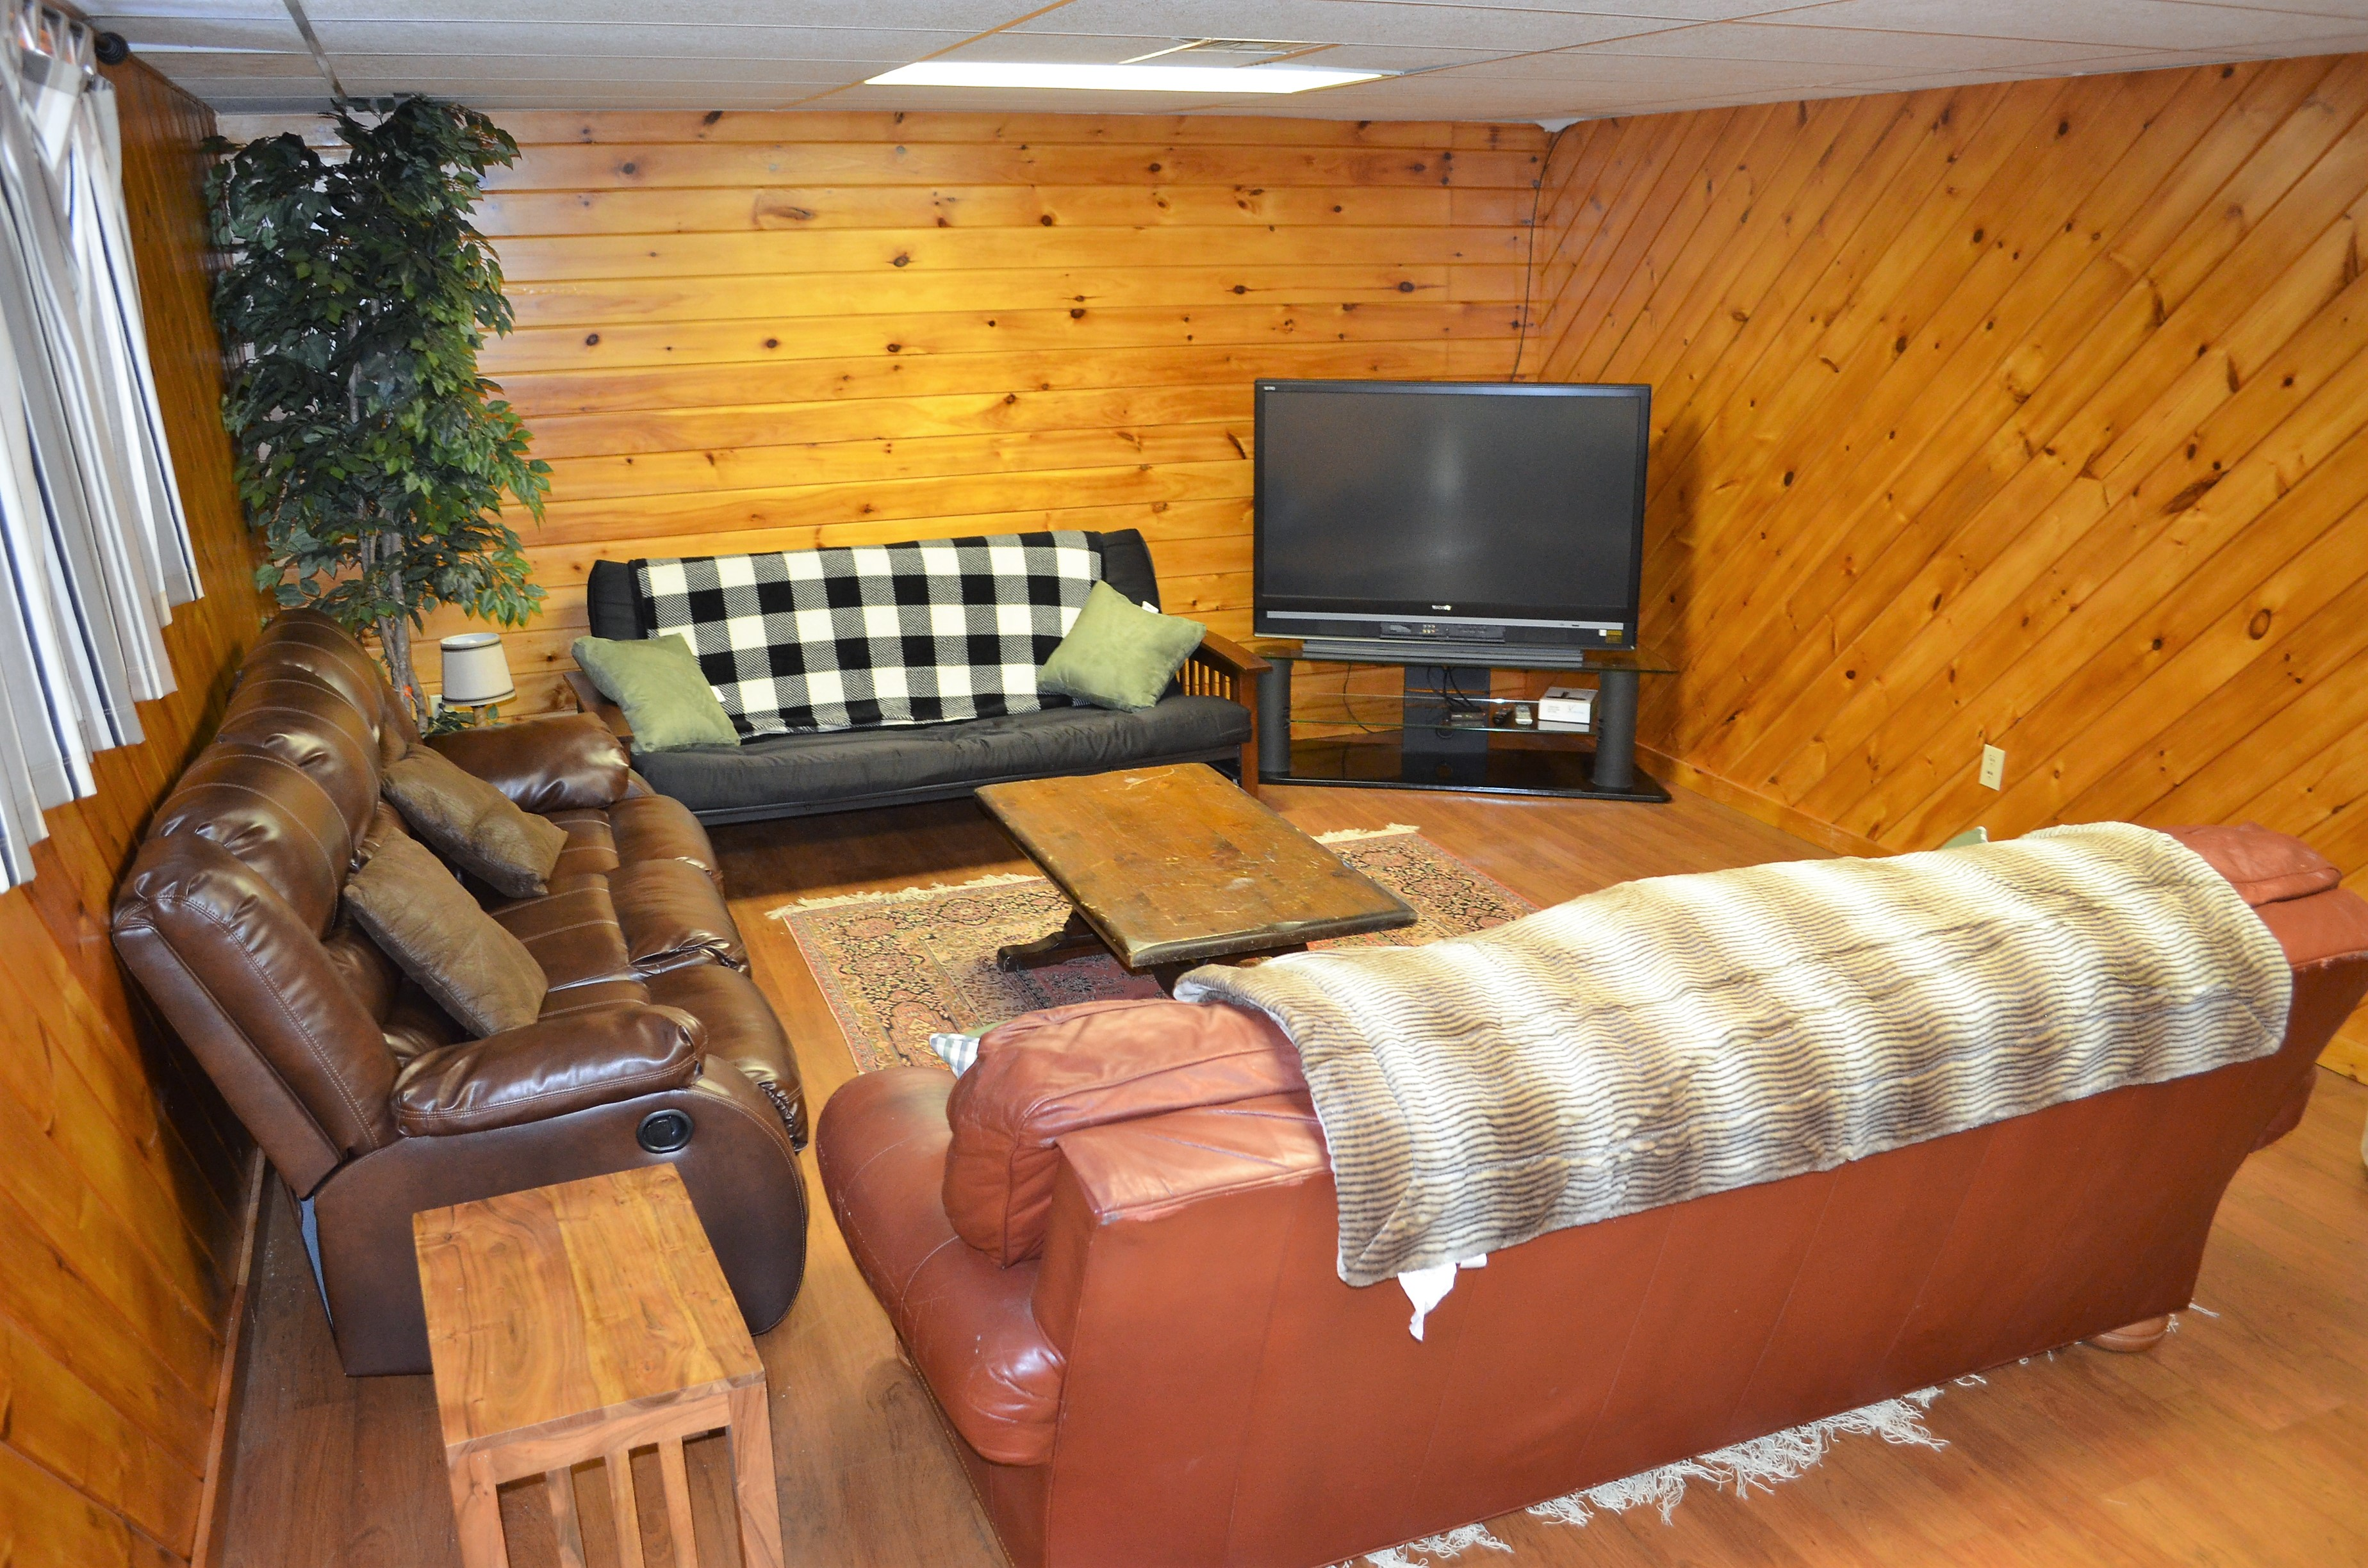 area poconos pa homes for rent in cabins pennsylvania newhomesource communityresults new